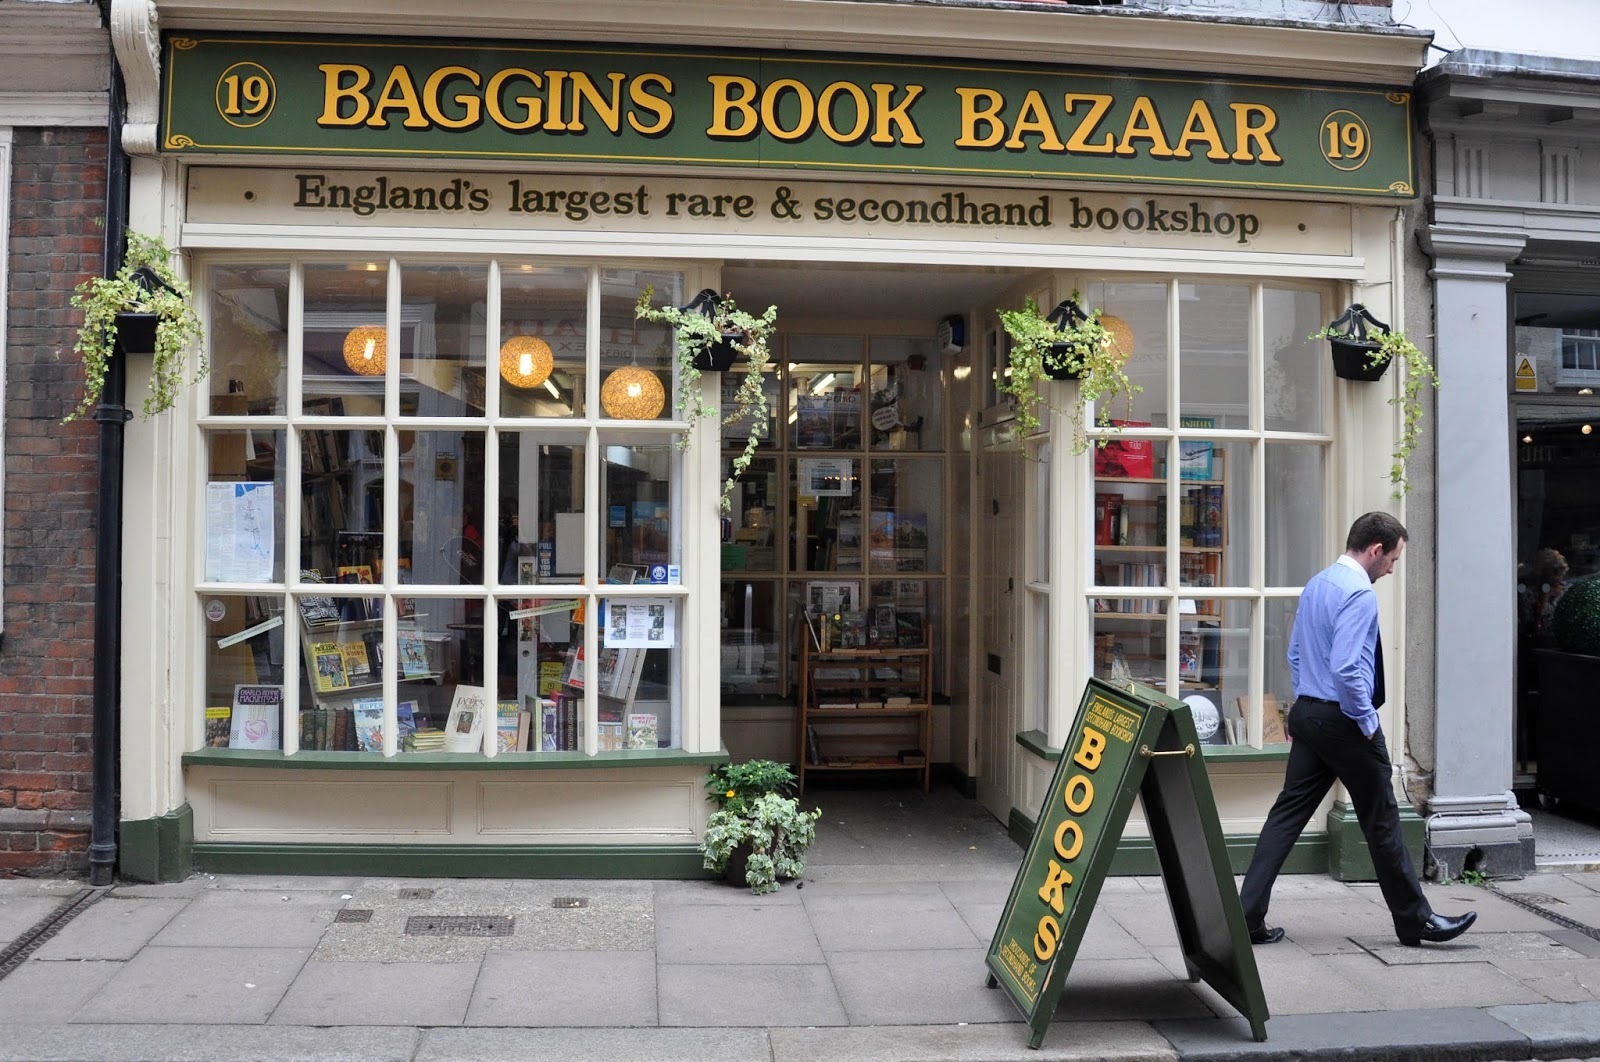 Baggins Book Bazaar, Rochester High Street, Kent, UK